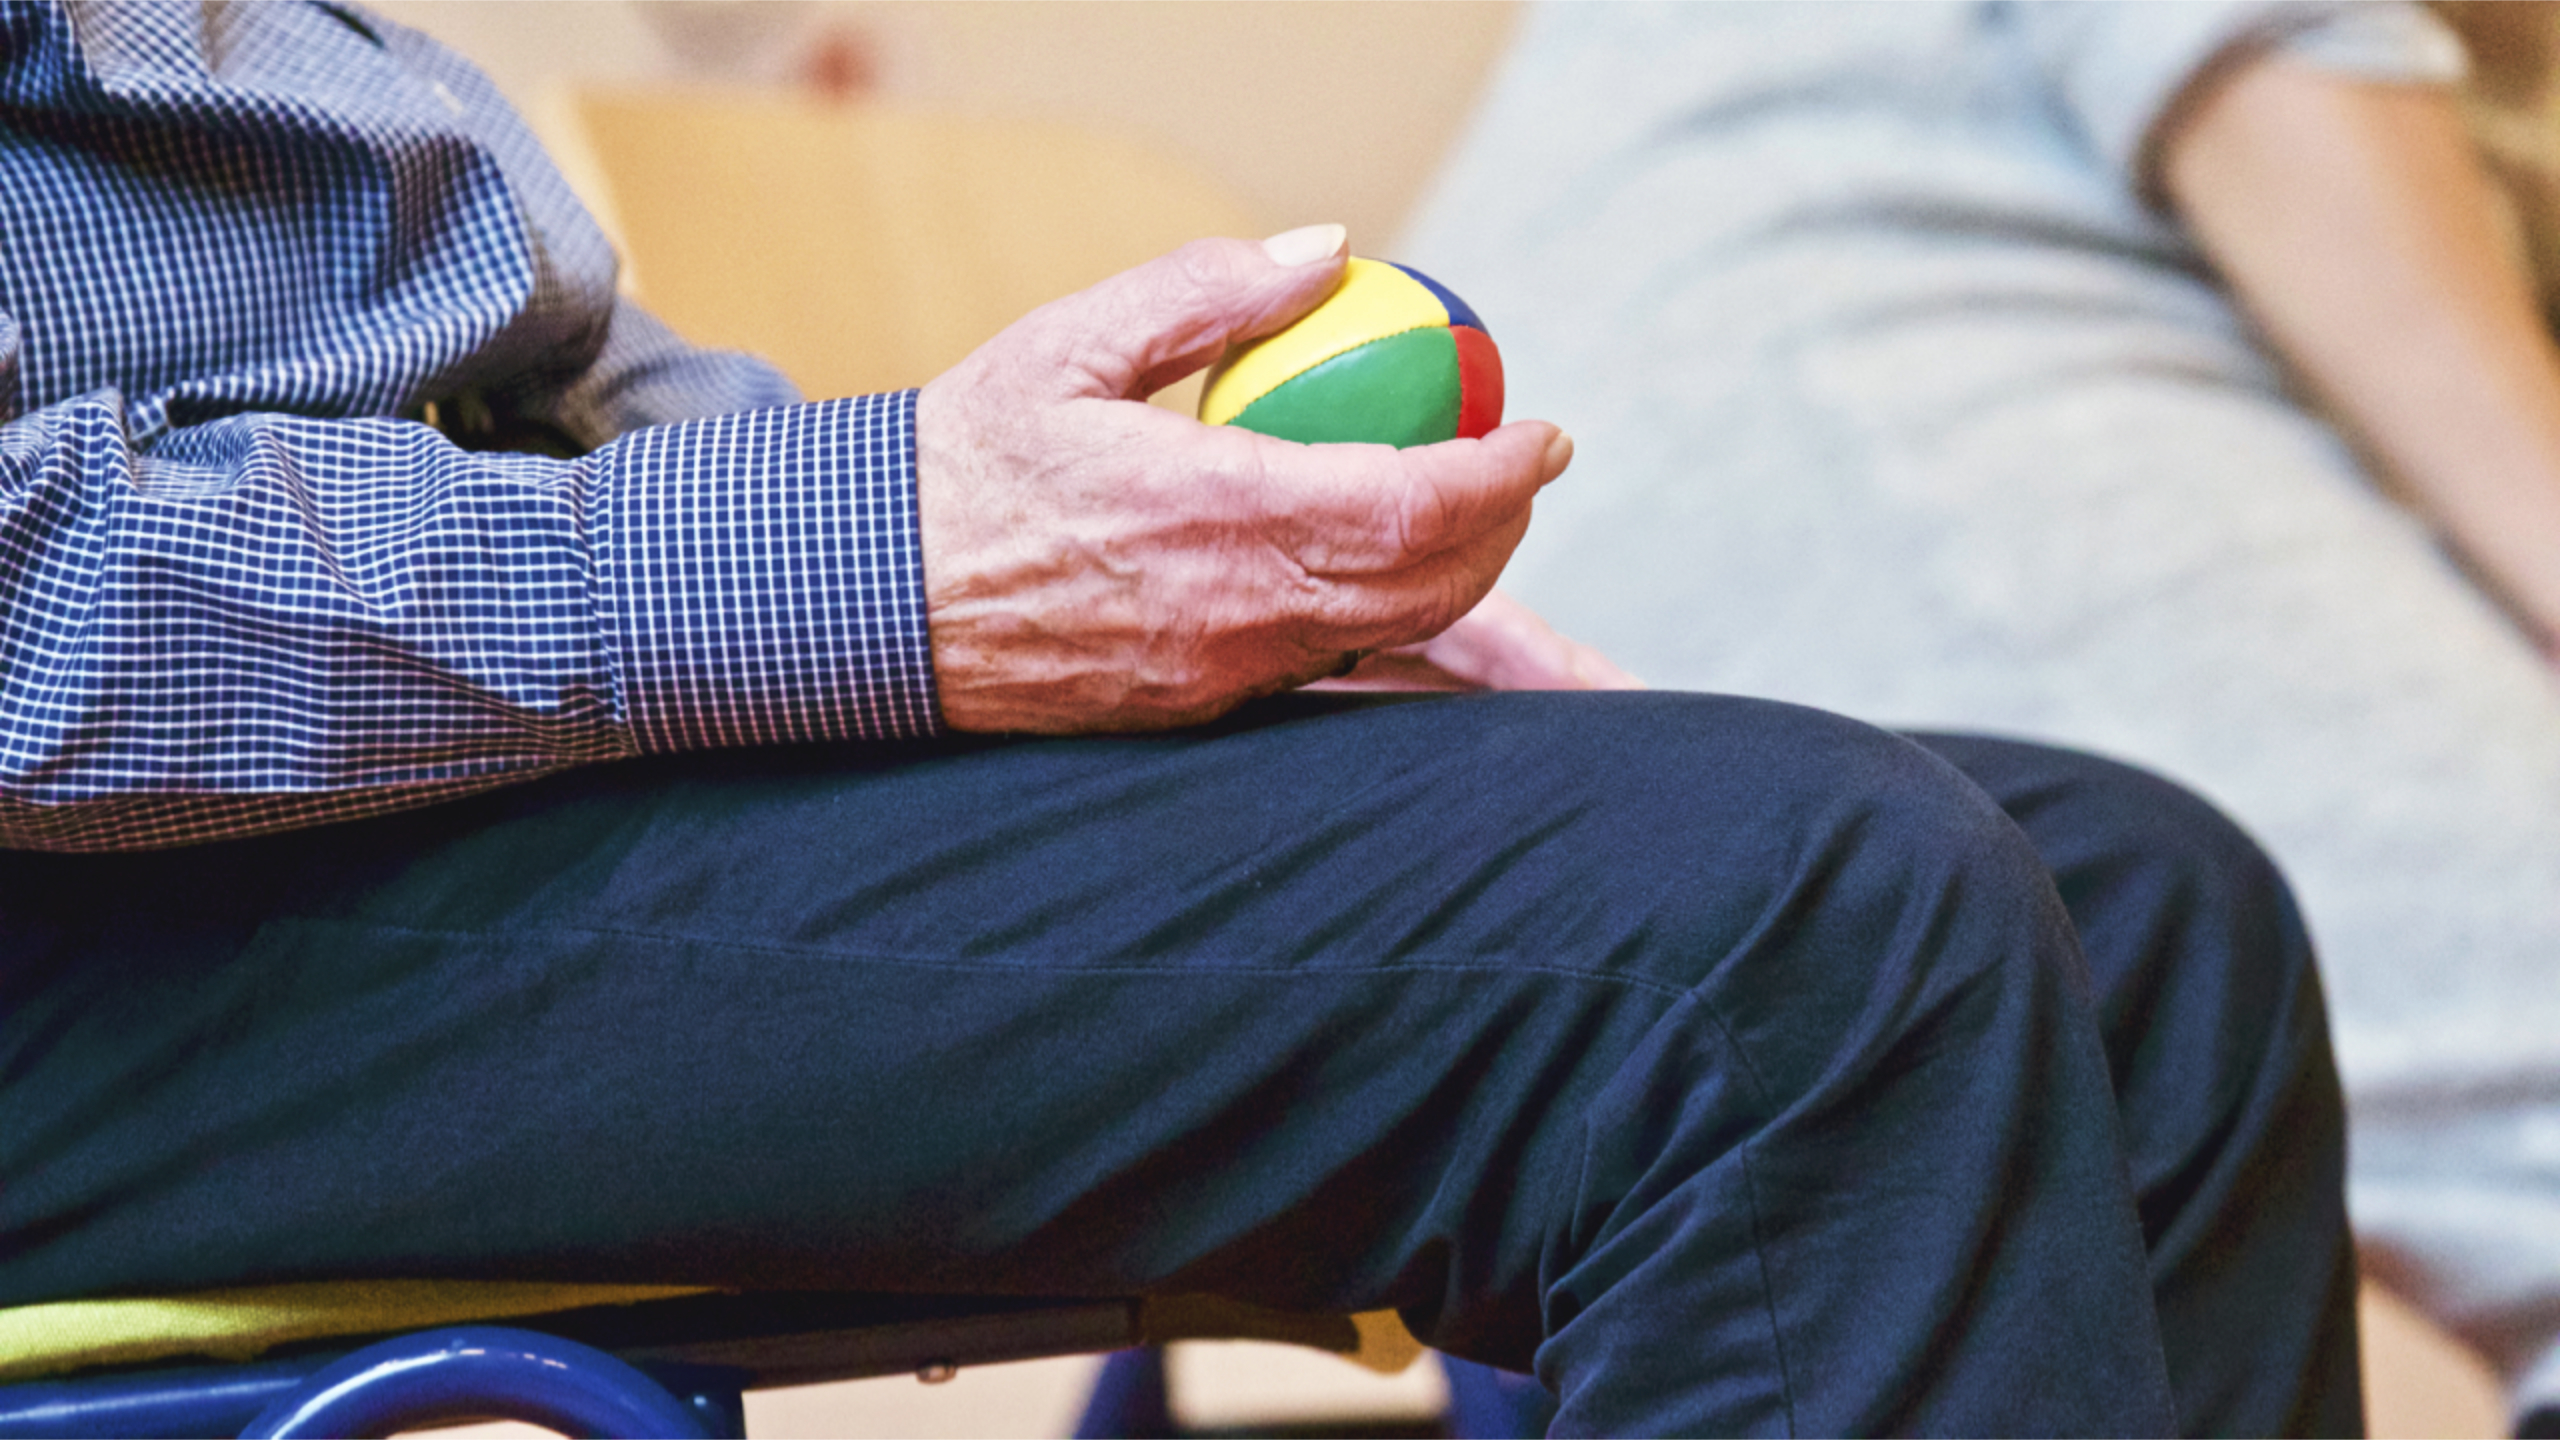 Employees could face reduced income at retirement – WEALTH at Work